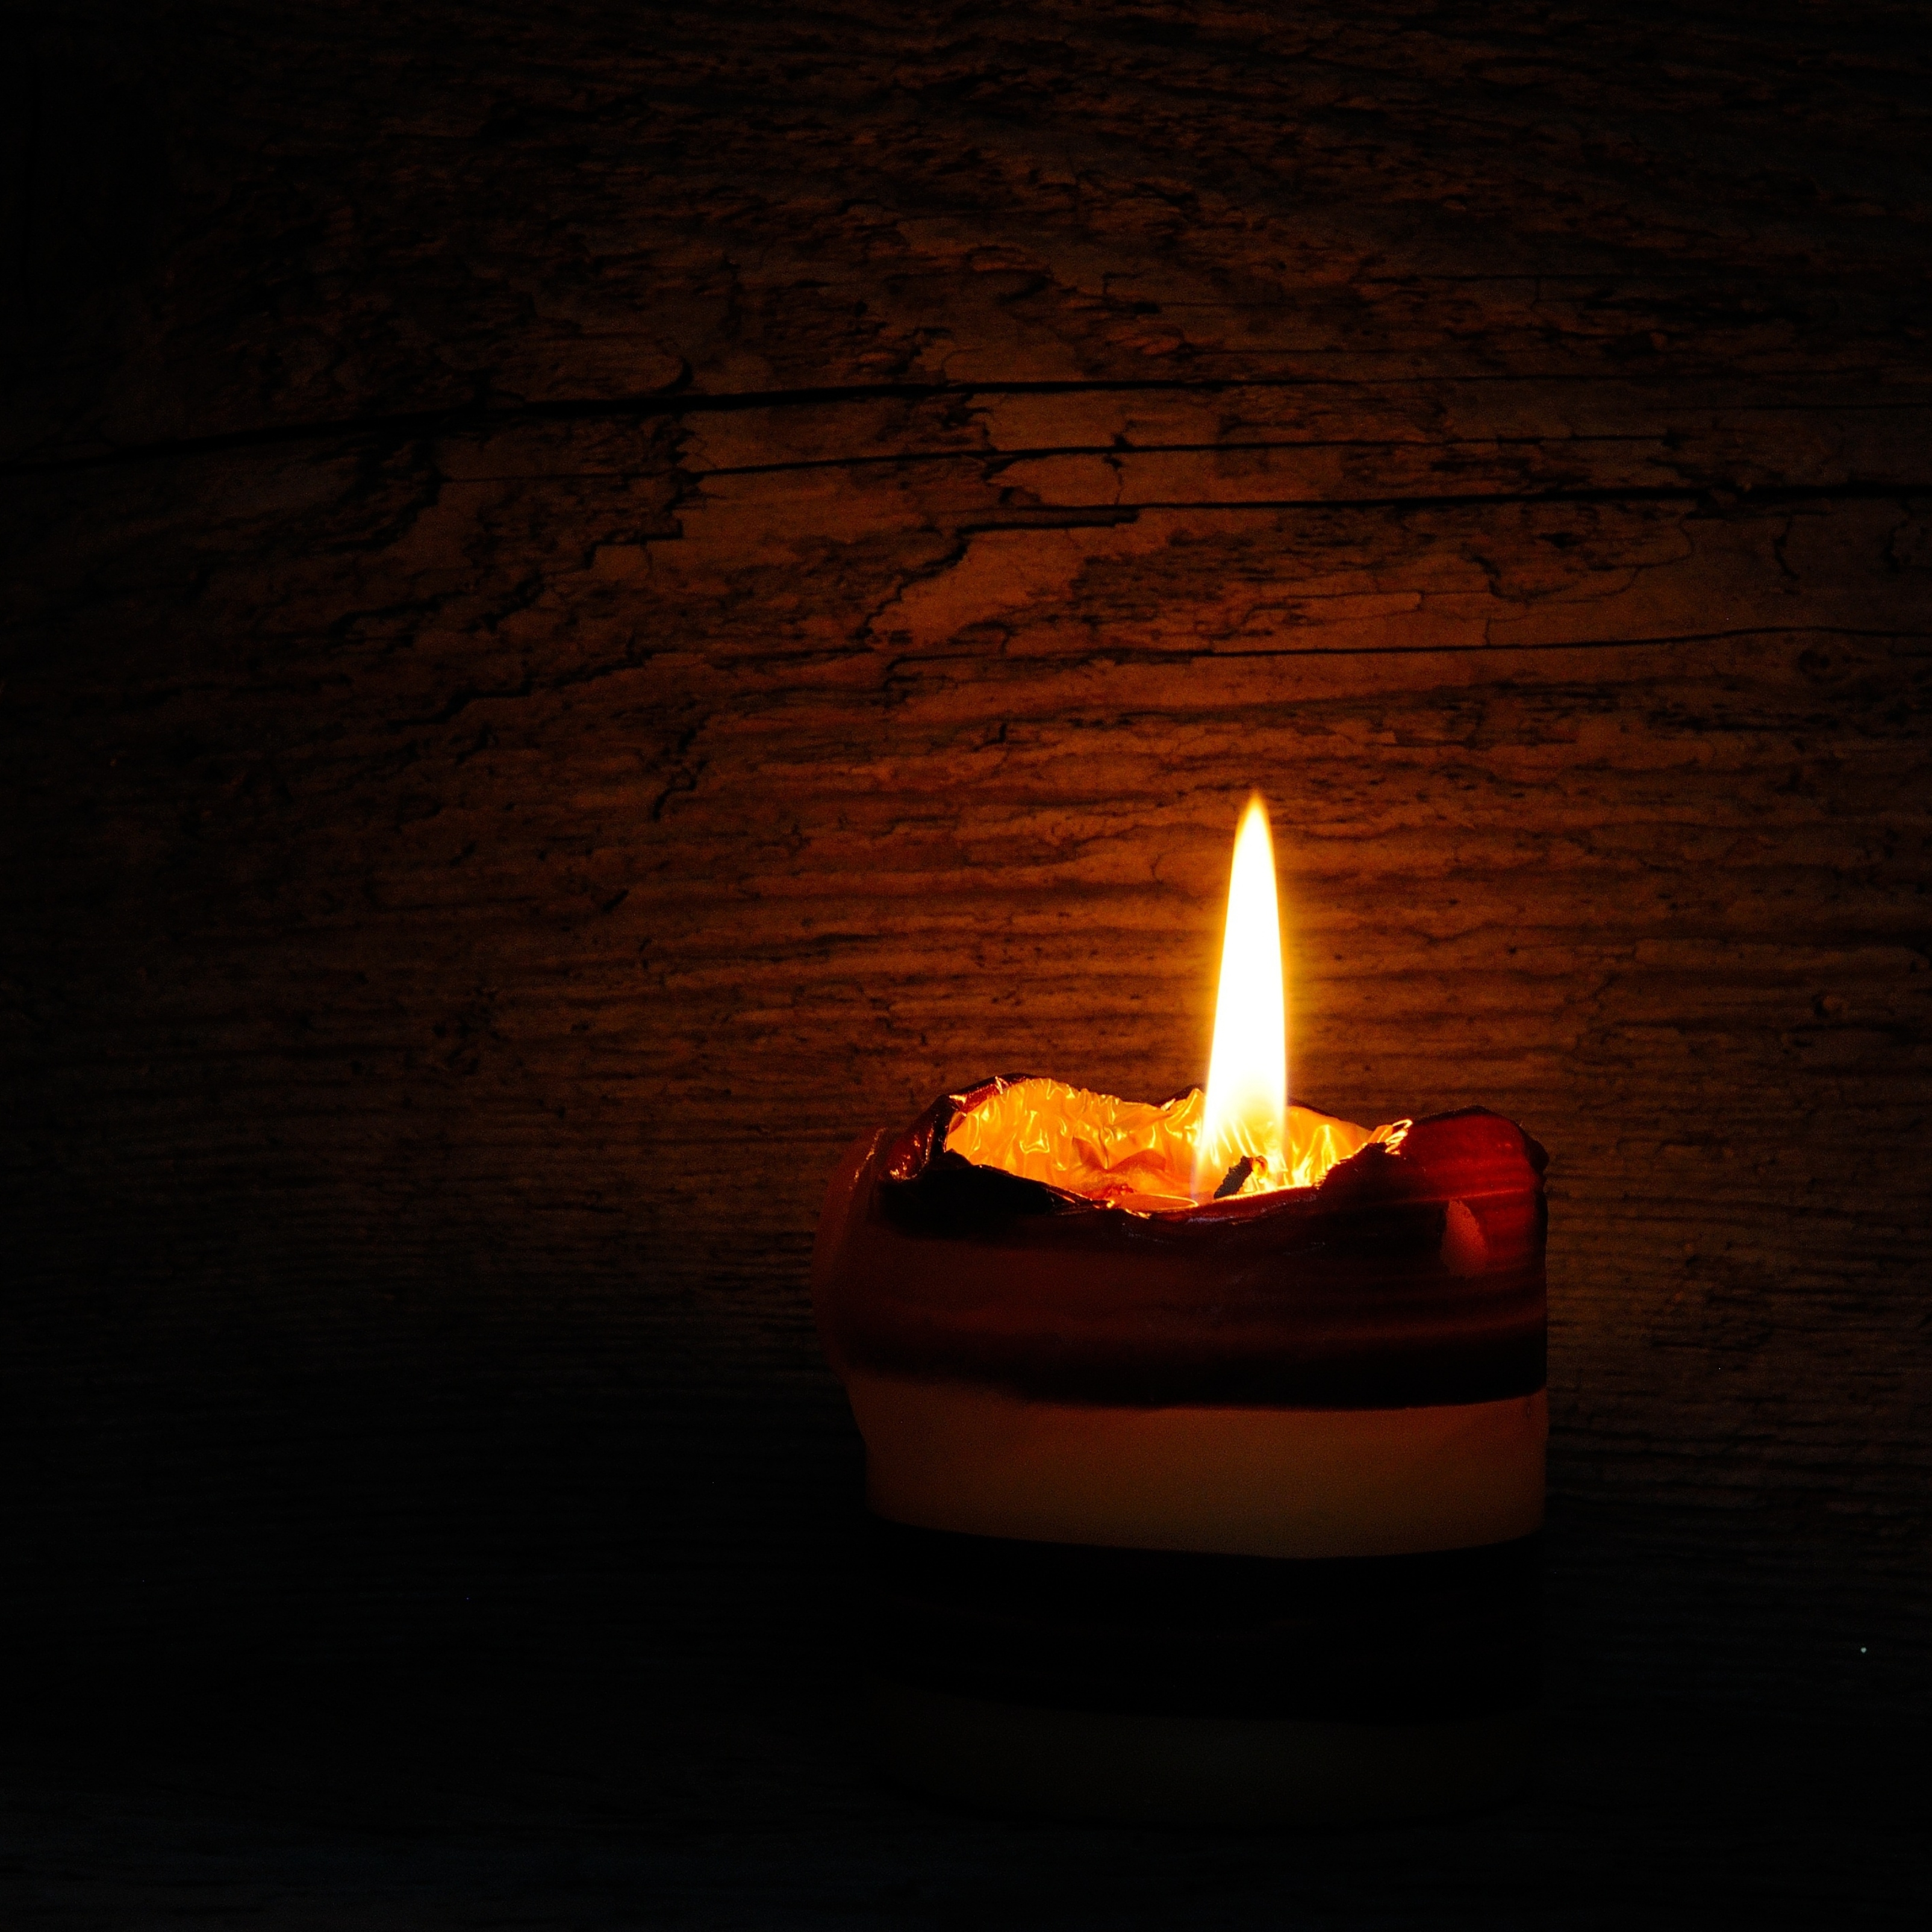 Lit Candle Light Flame in the Dark iPad Wallpaper